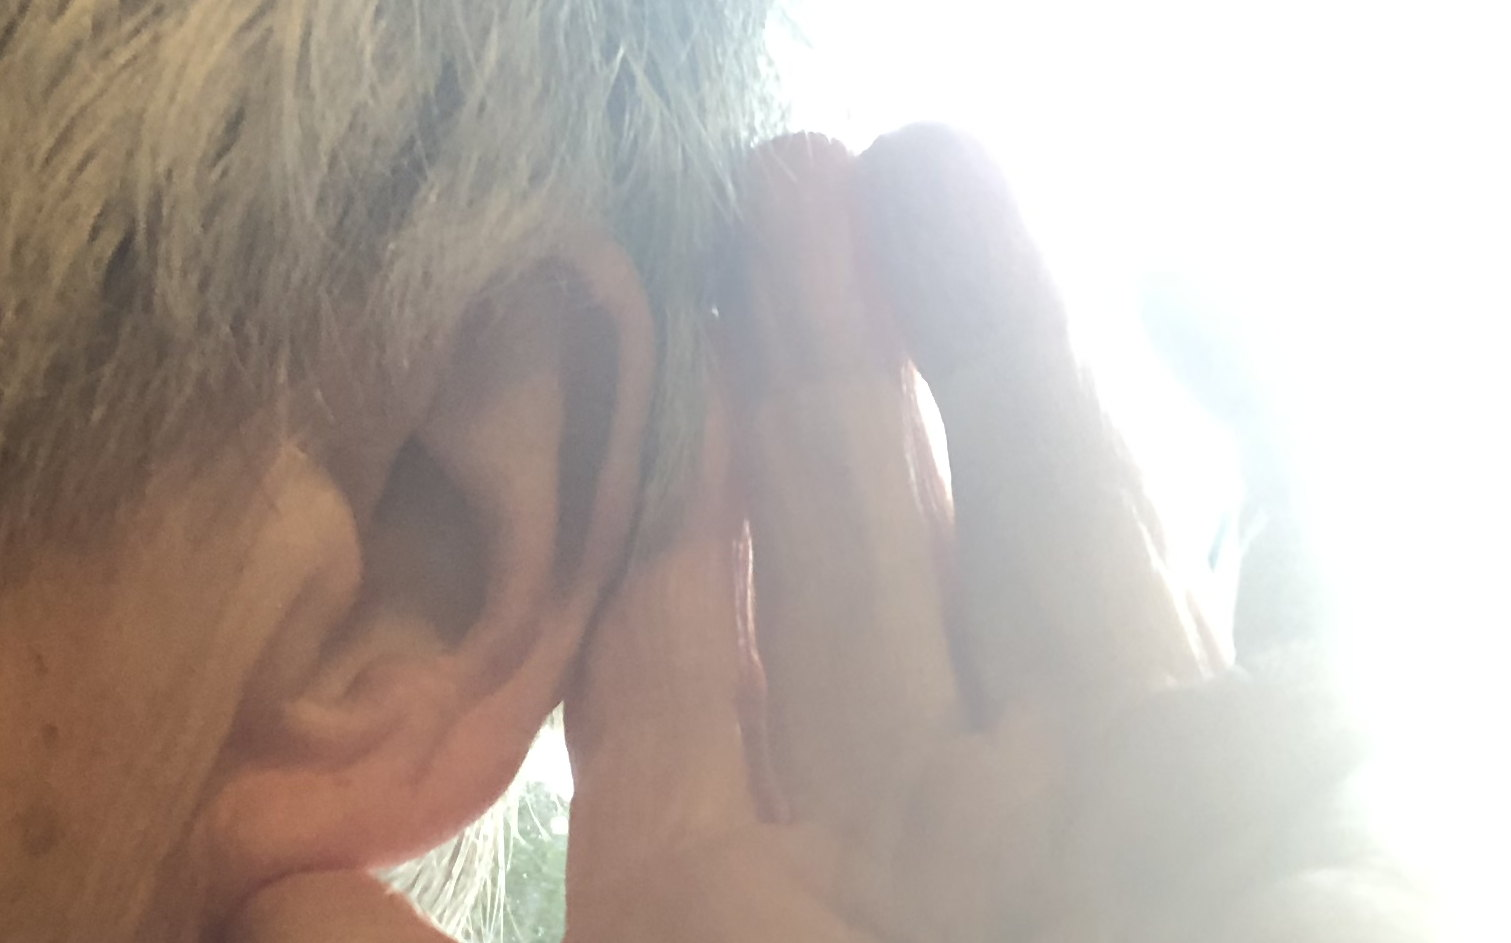 listening: photo of an ear cupped by a hand